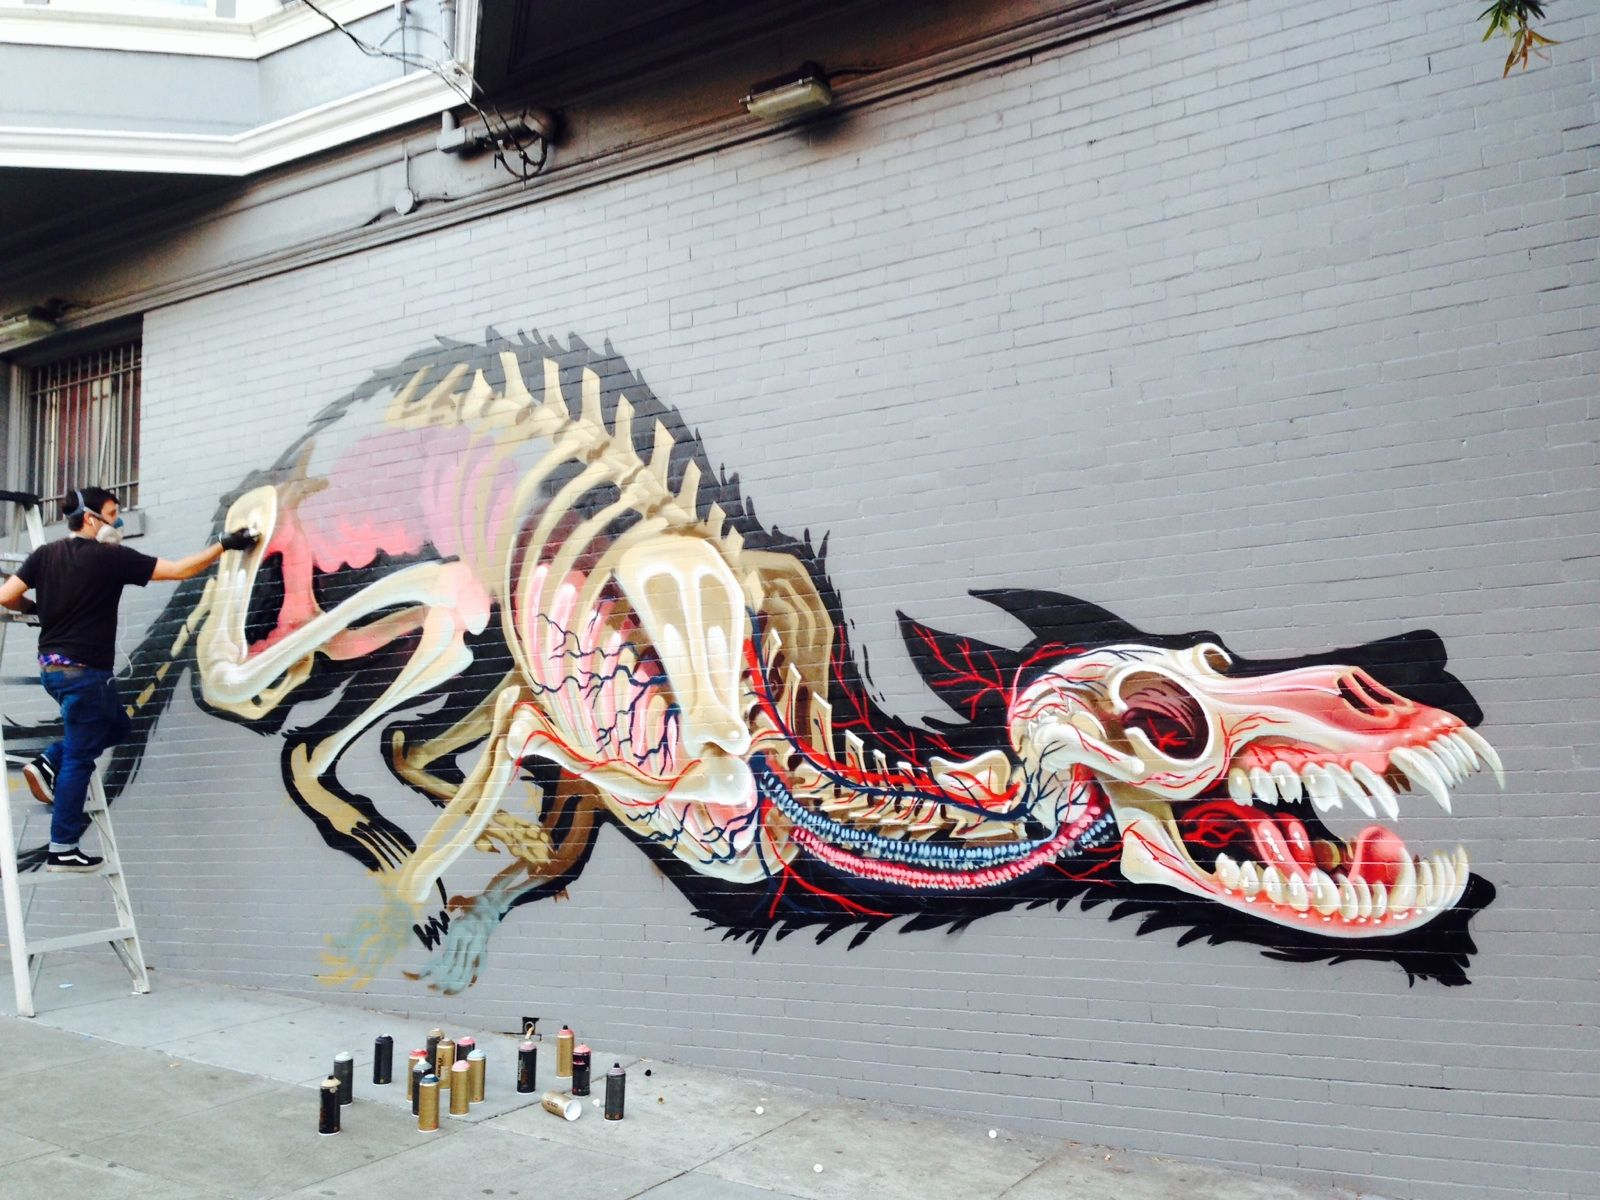 nychos new san francisco mural in progress today part 2 nychos new san francisco mural in progress today part 2